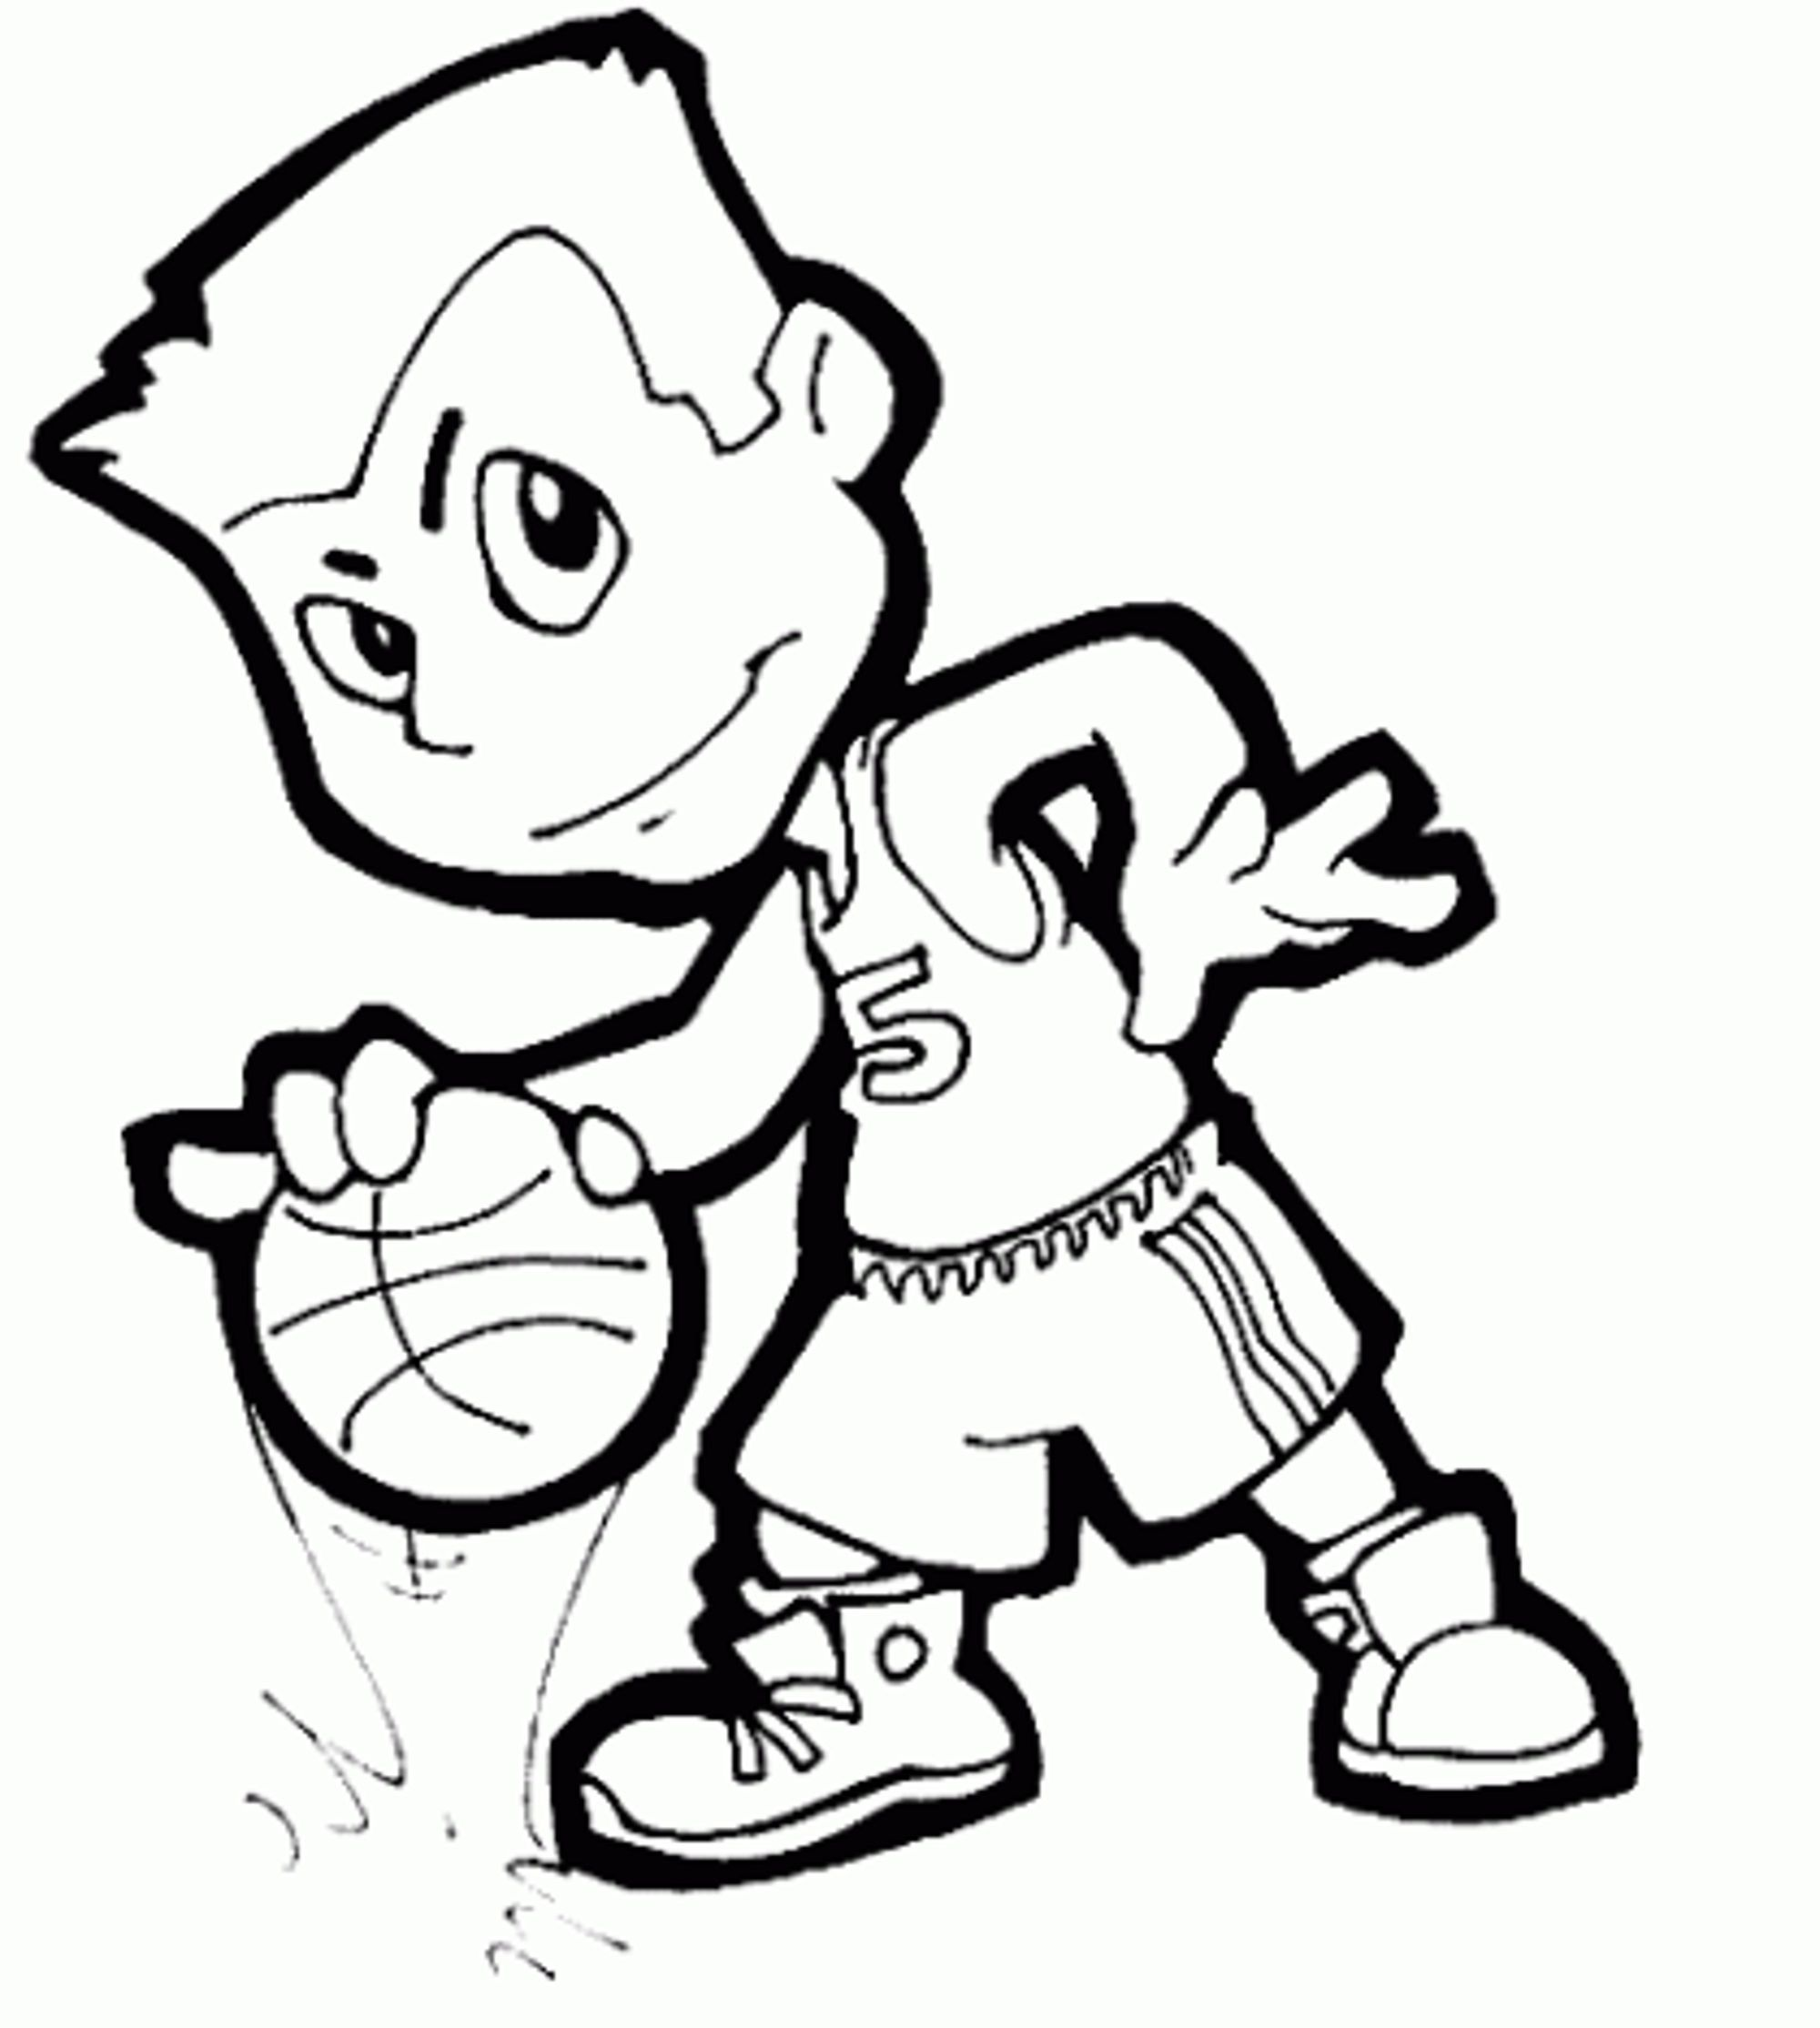 2000x2229 Basketball coloring pages for boys